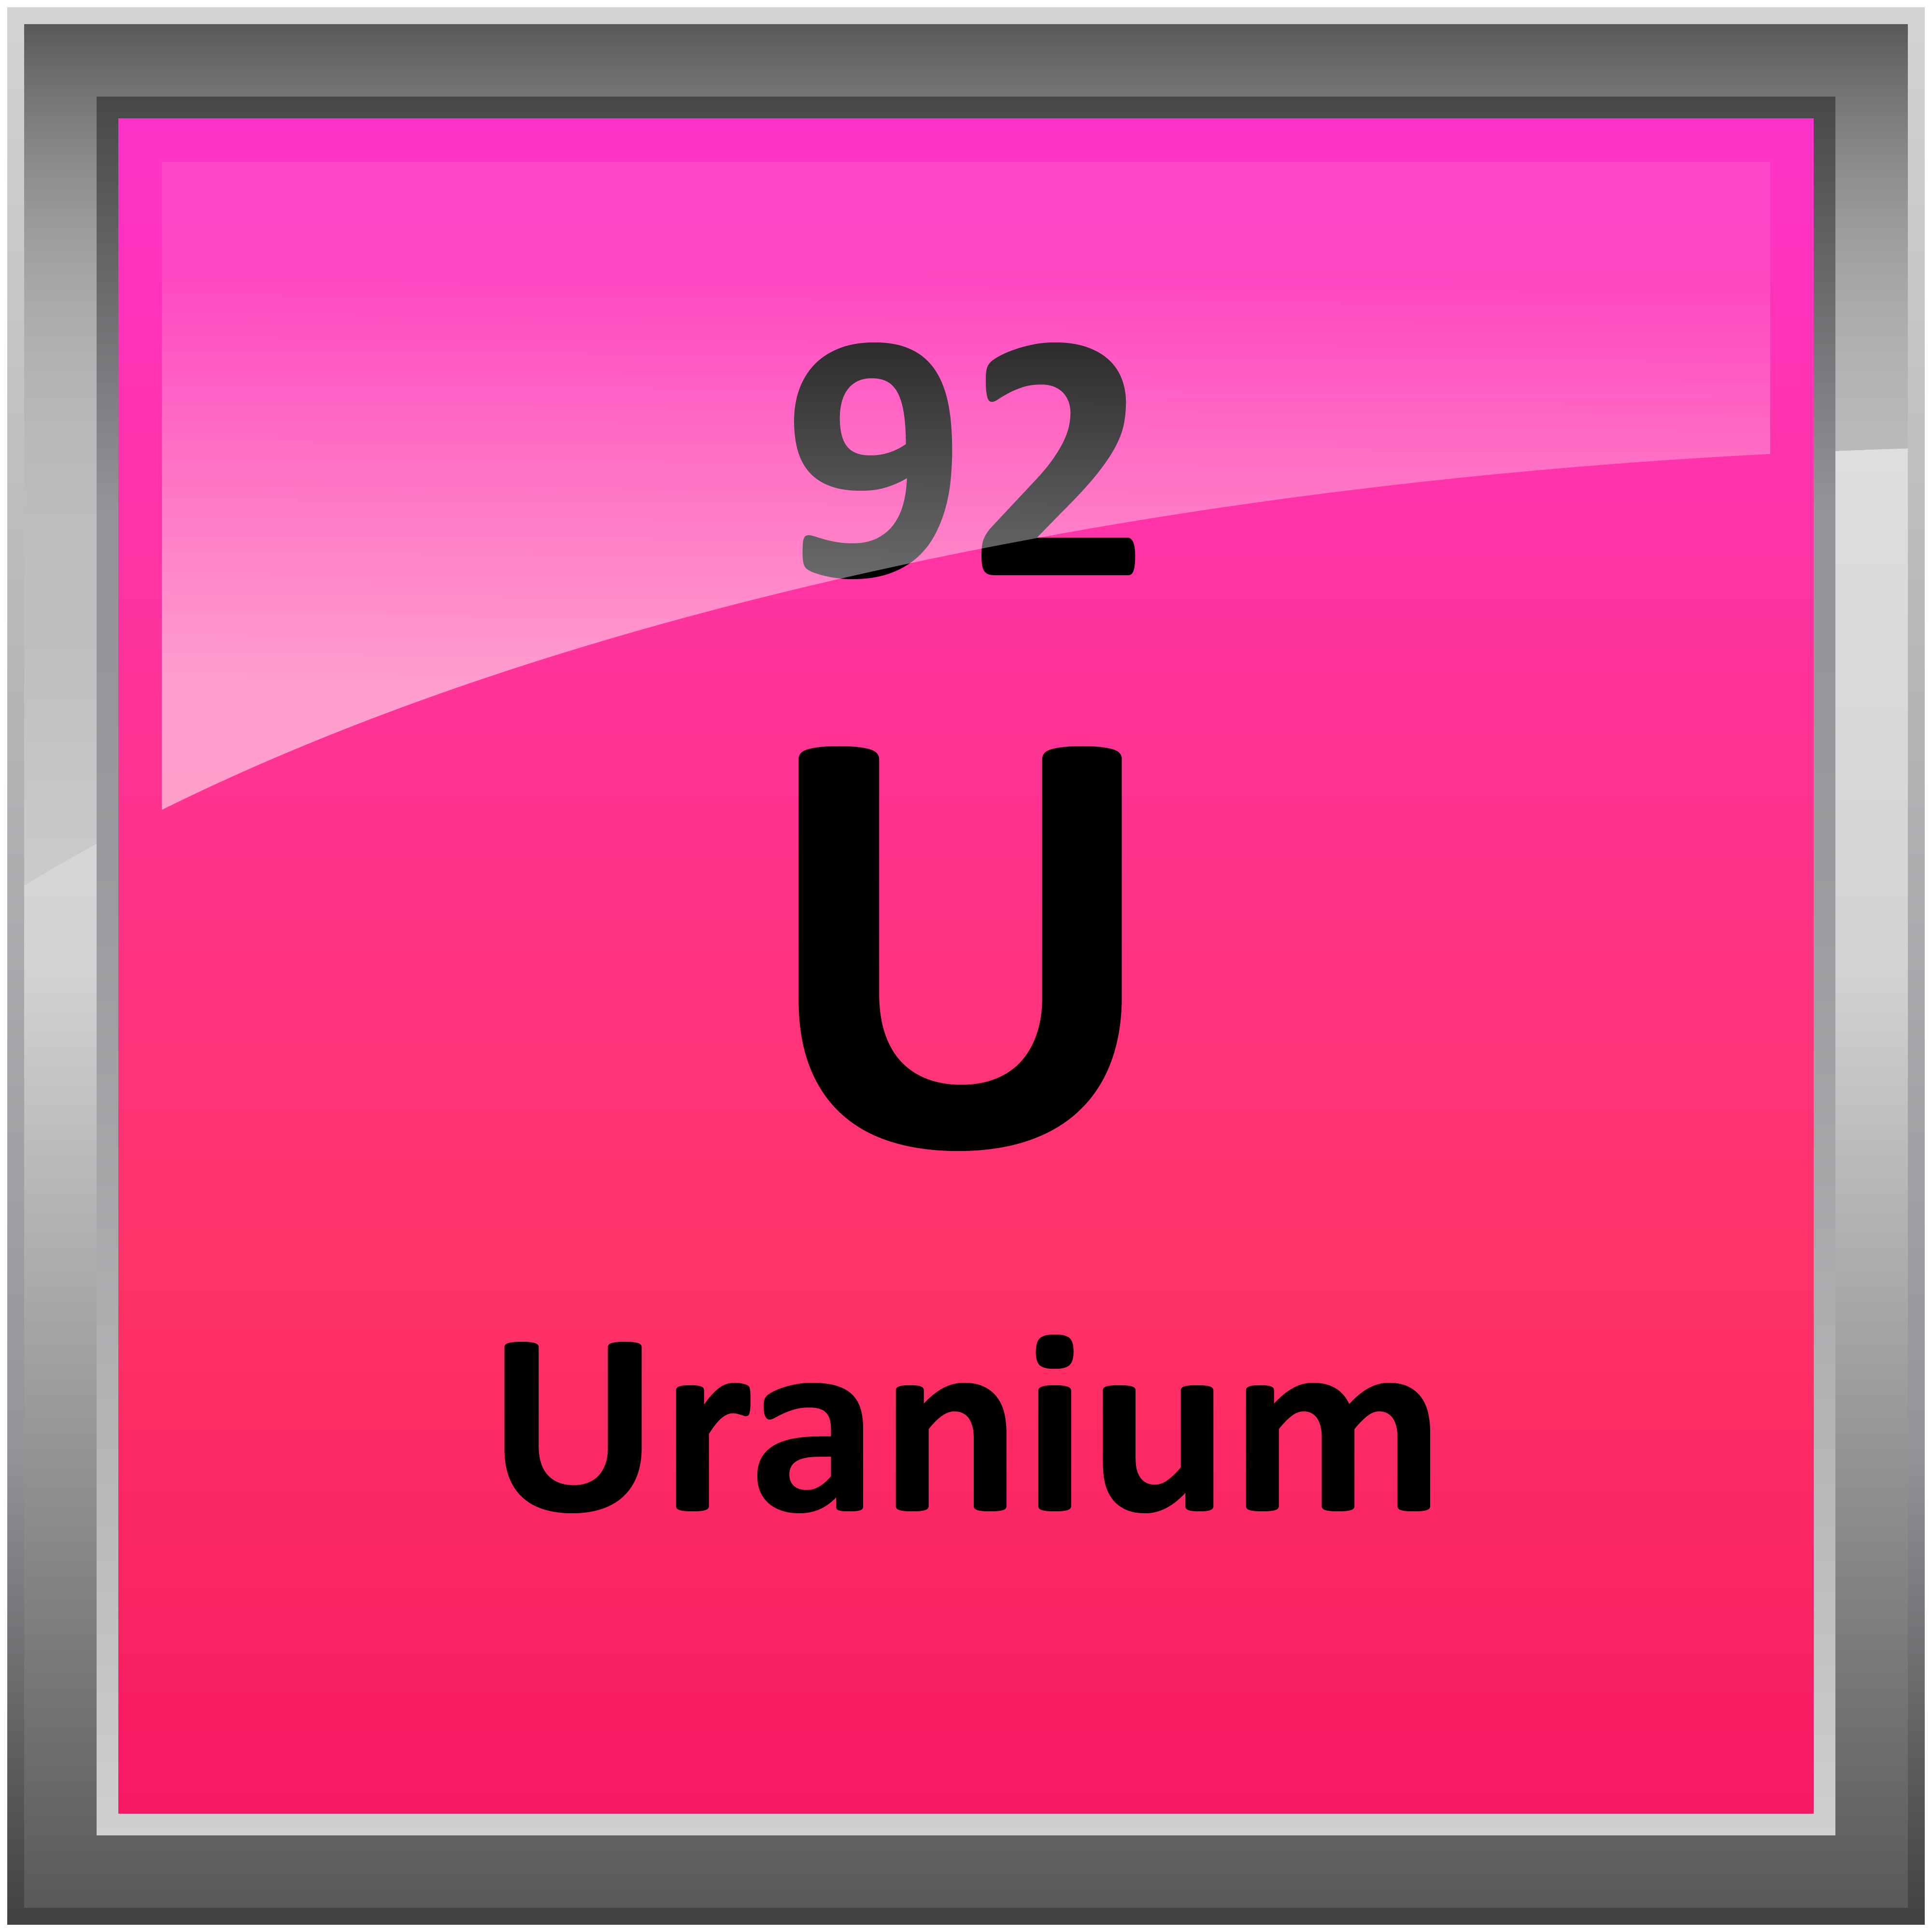 092 uranium science notes and projects 092 uranium gamestrikefo Choice Image